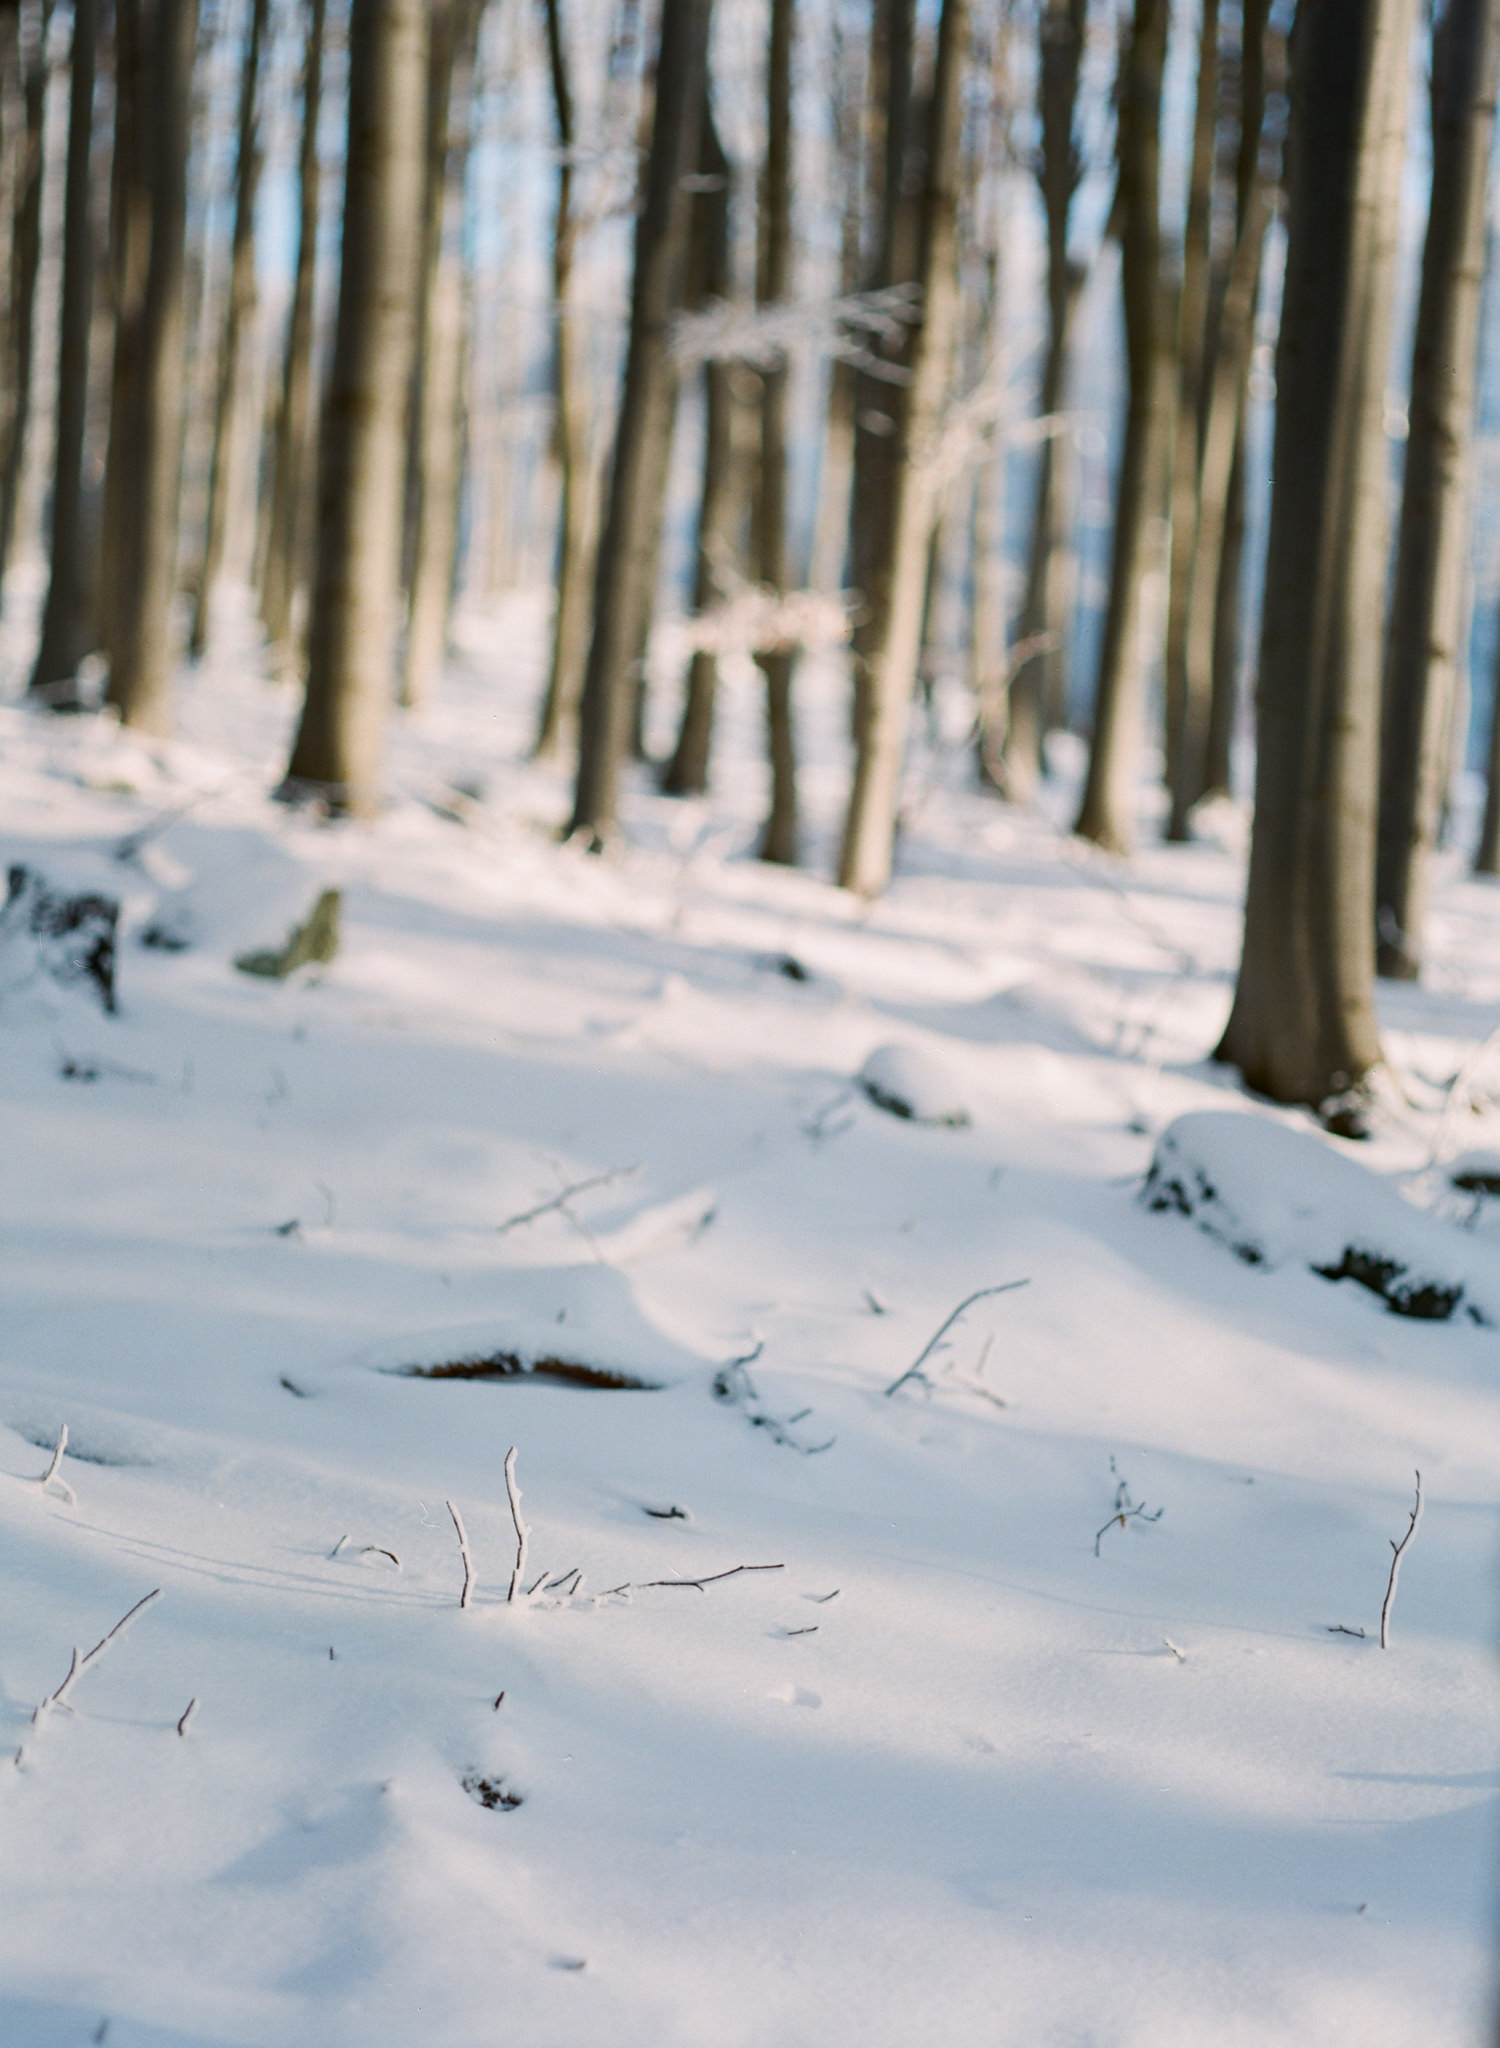 Exploring The Snowy Woods